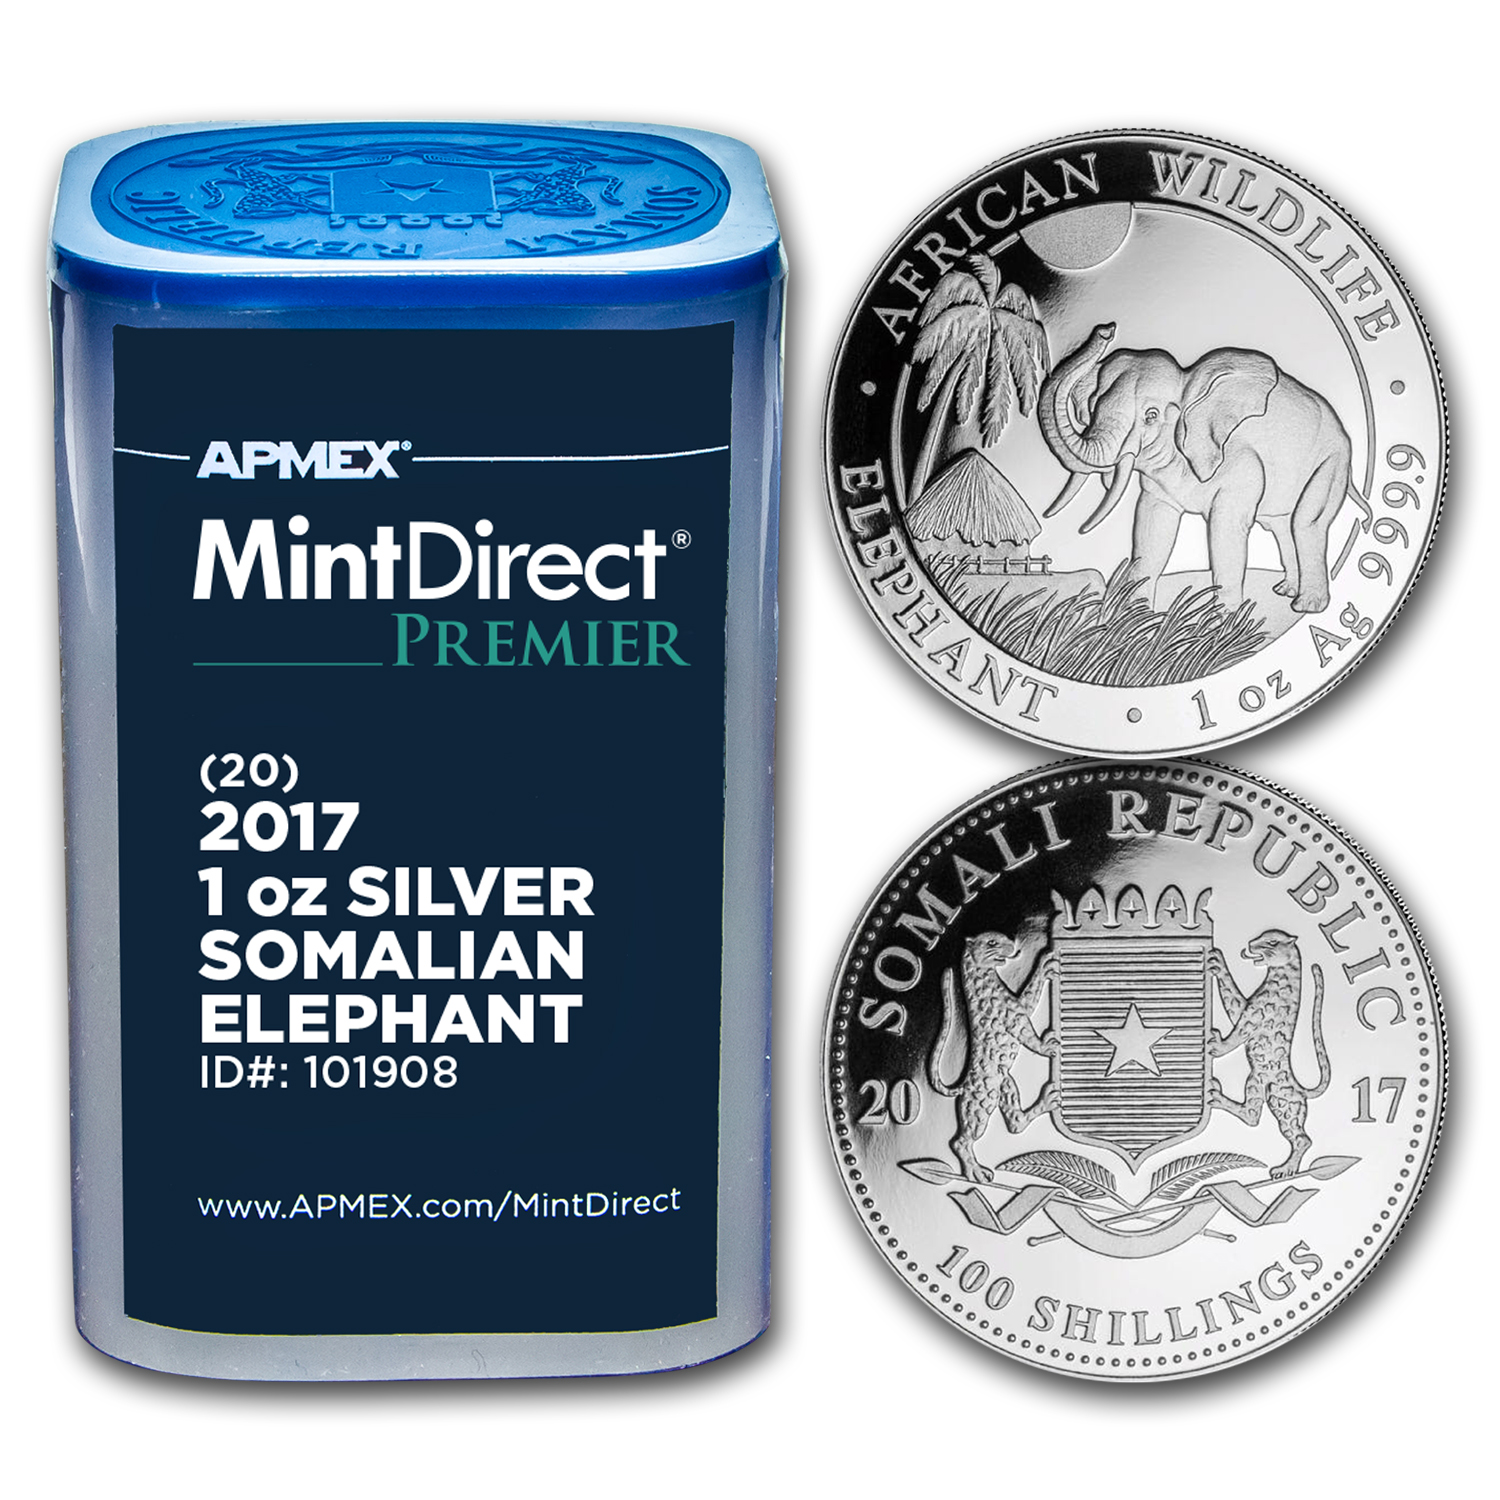 2017 Somalia 1 oz Silver Elephant (MintDirect® Premier Tube)